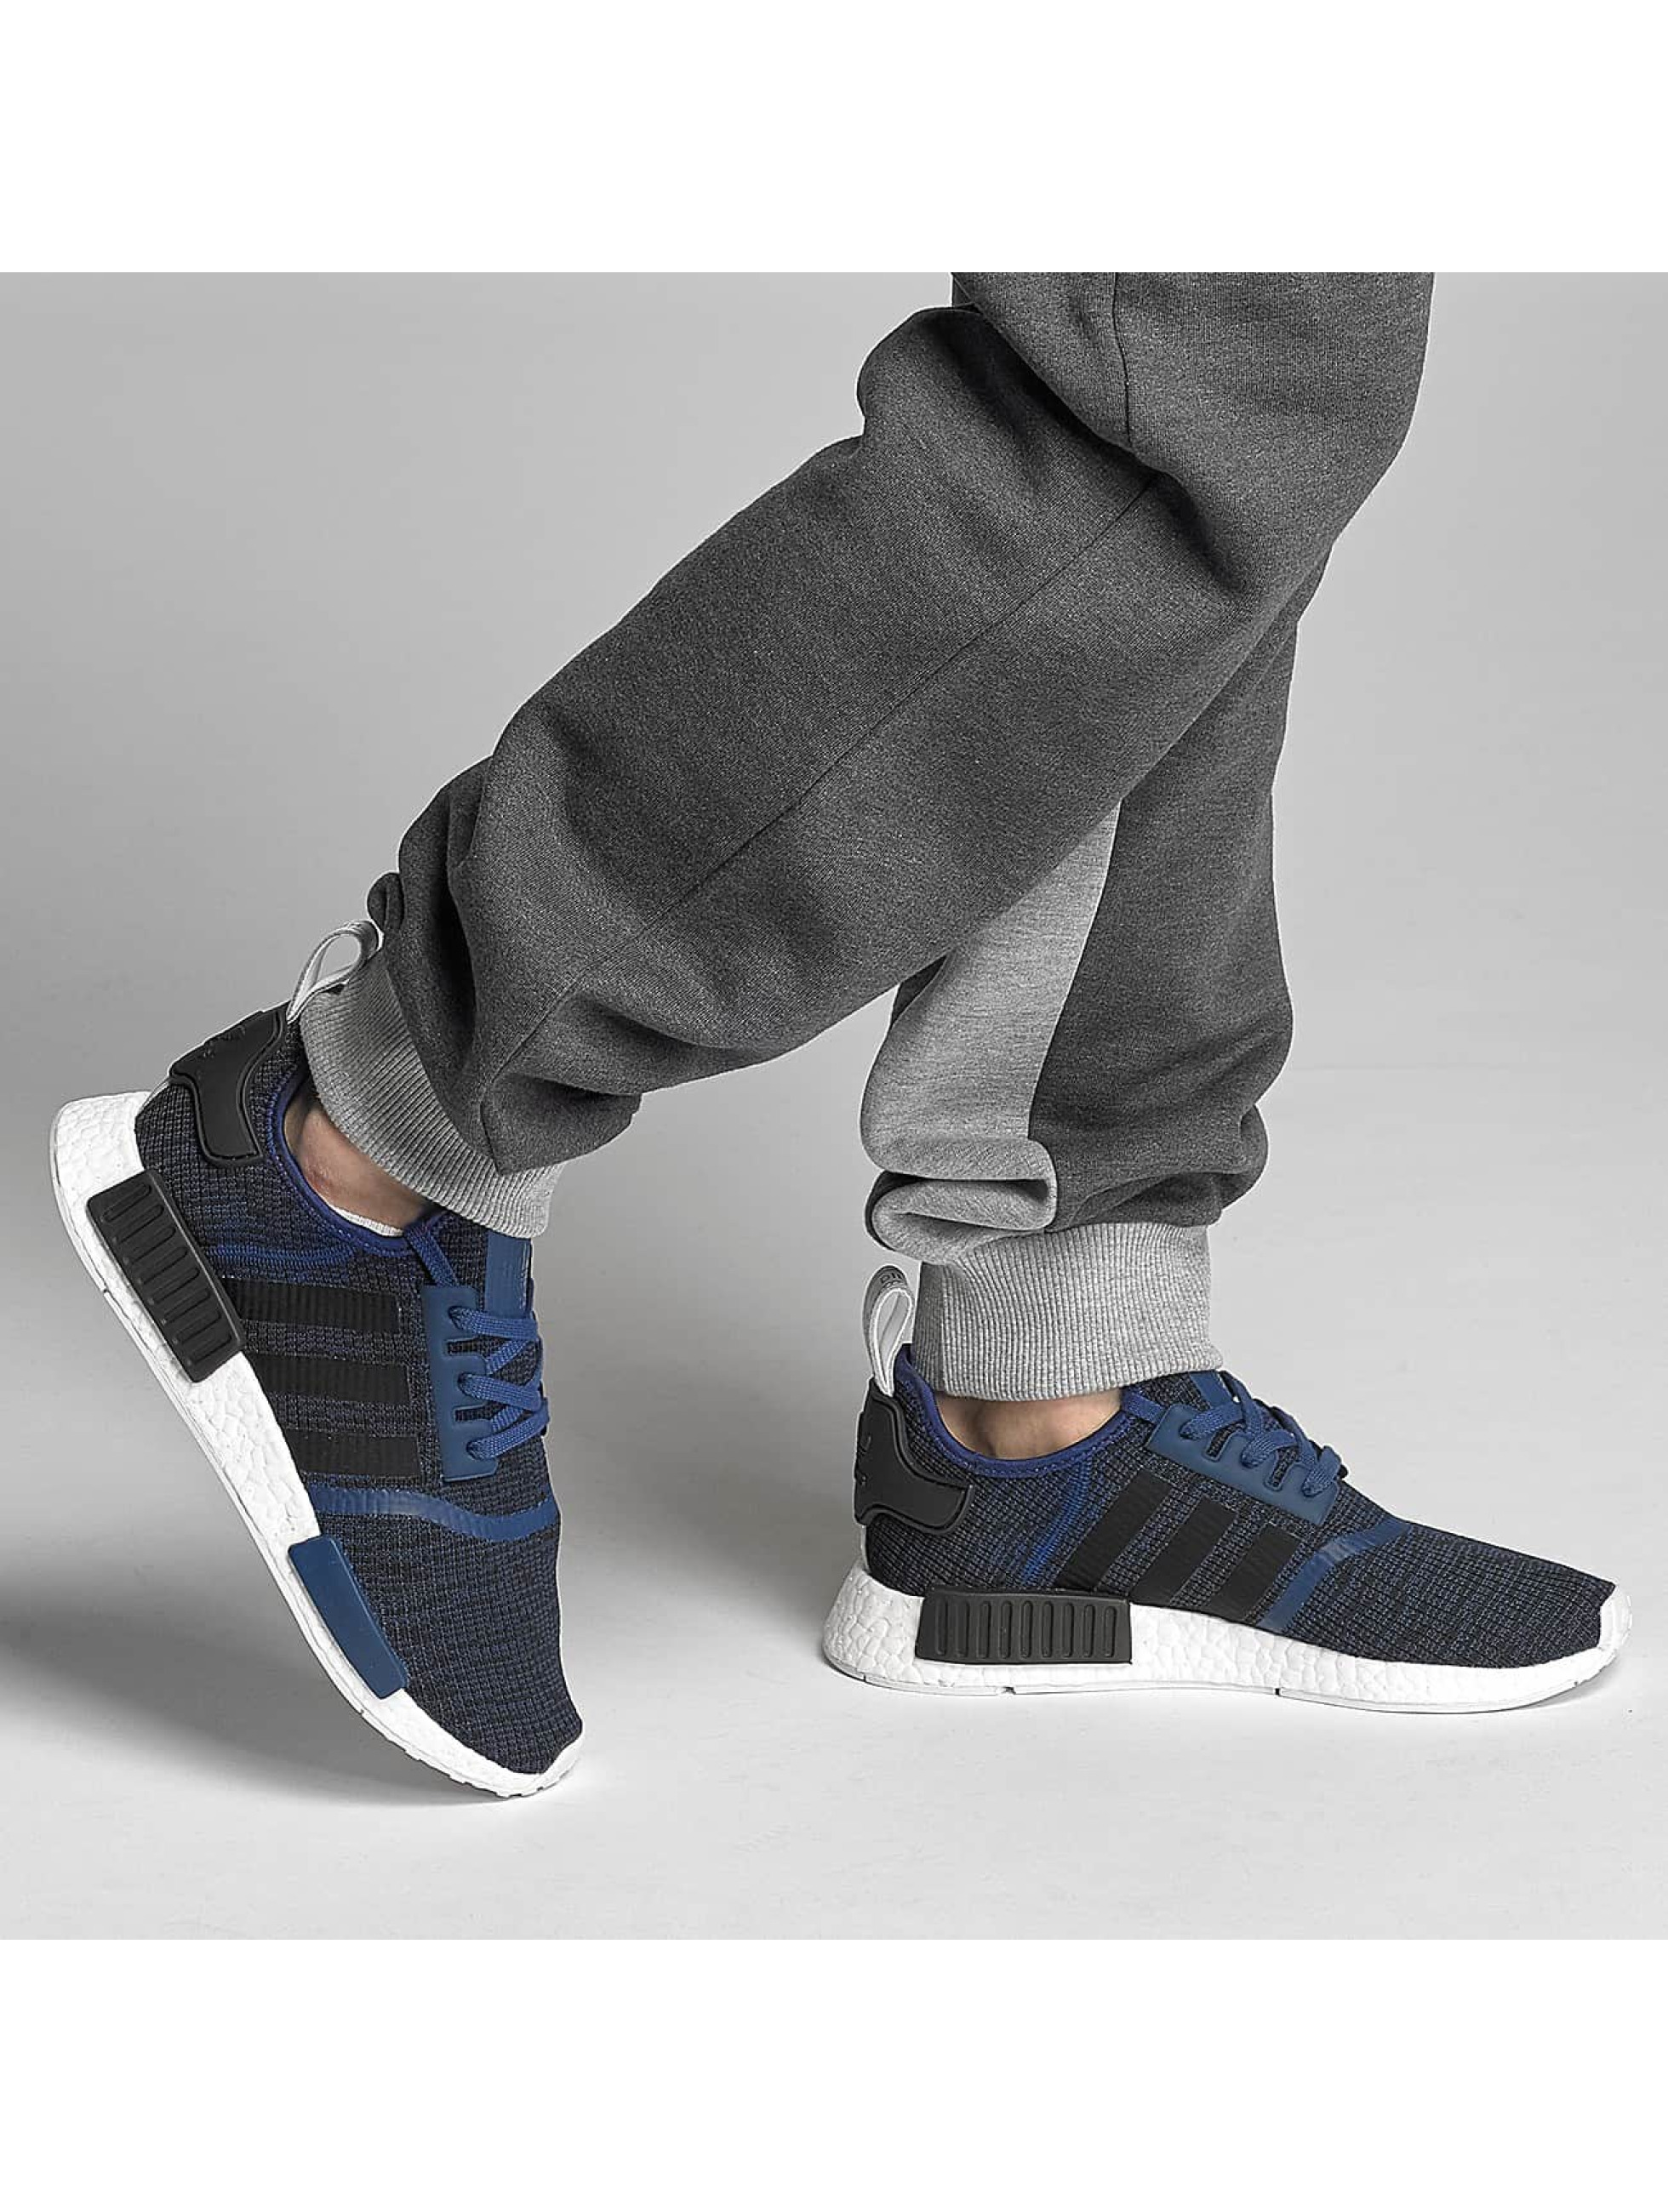 adidas originals Sneakers NMD_R1 blue